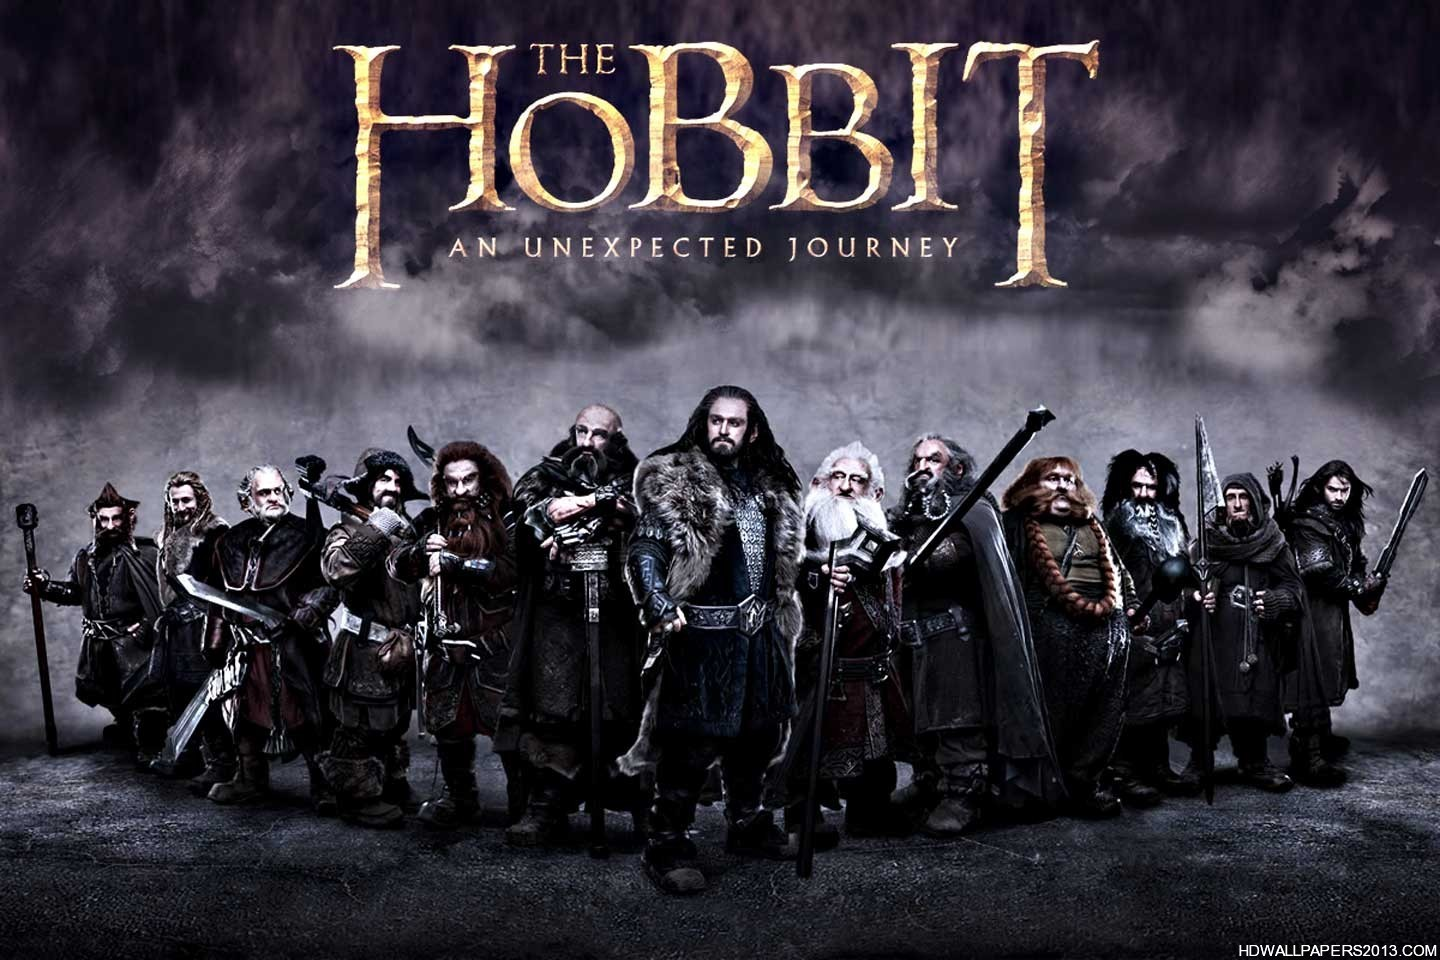 The Hobbit Movie HD Wallpapers The Hobbit Movie HD Background 1440x960